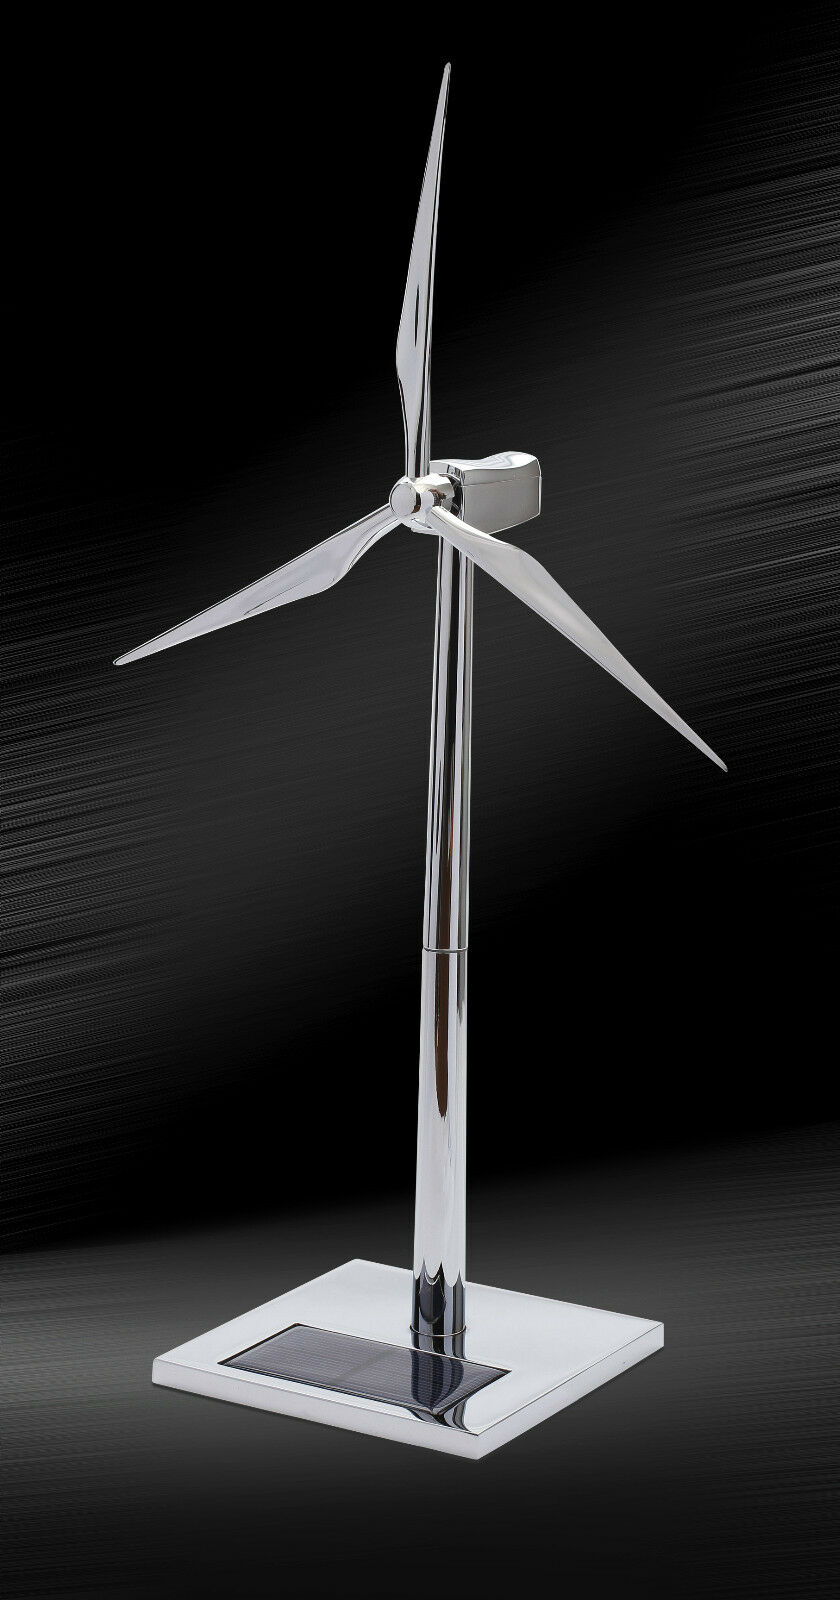 FC09 FC10  Free Shipping Desktop Model-Solar Powered Wind Turbine&Zinc alloy